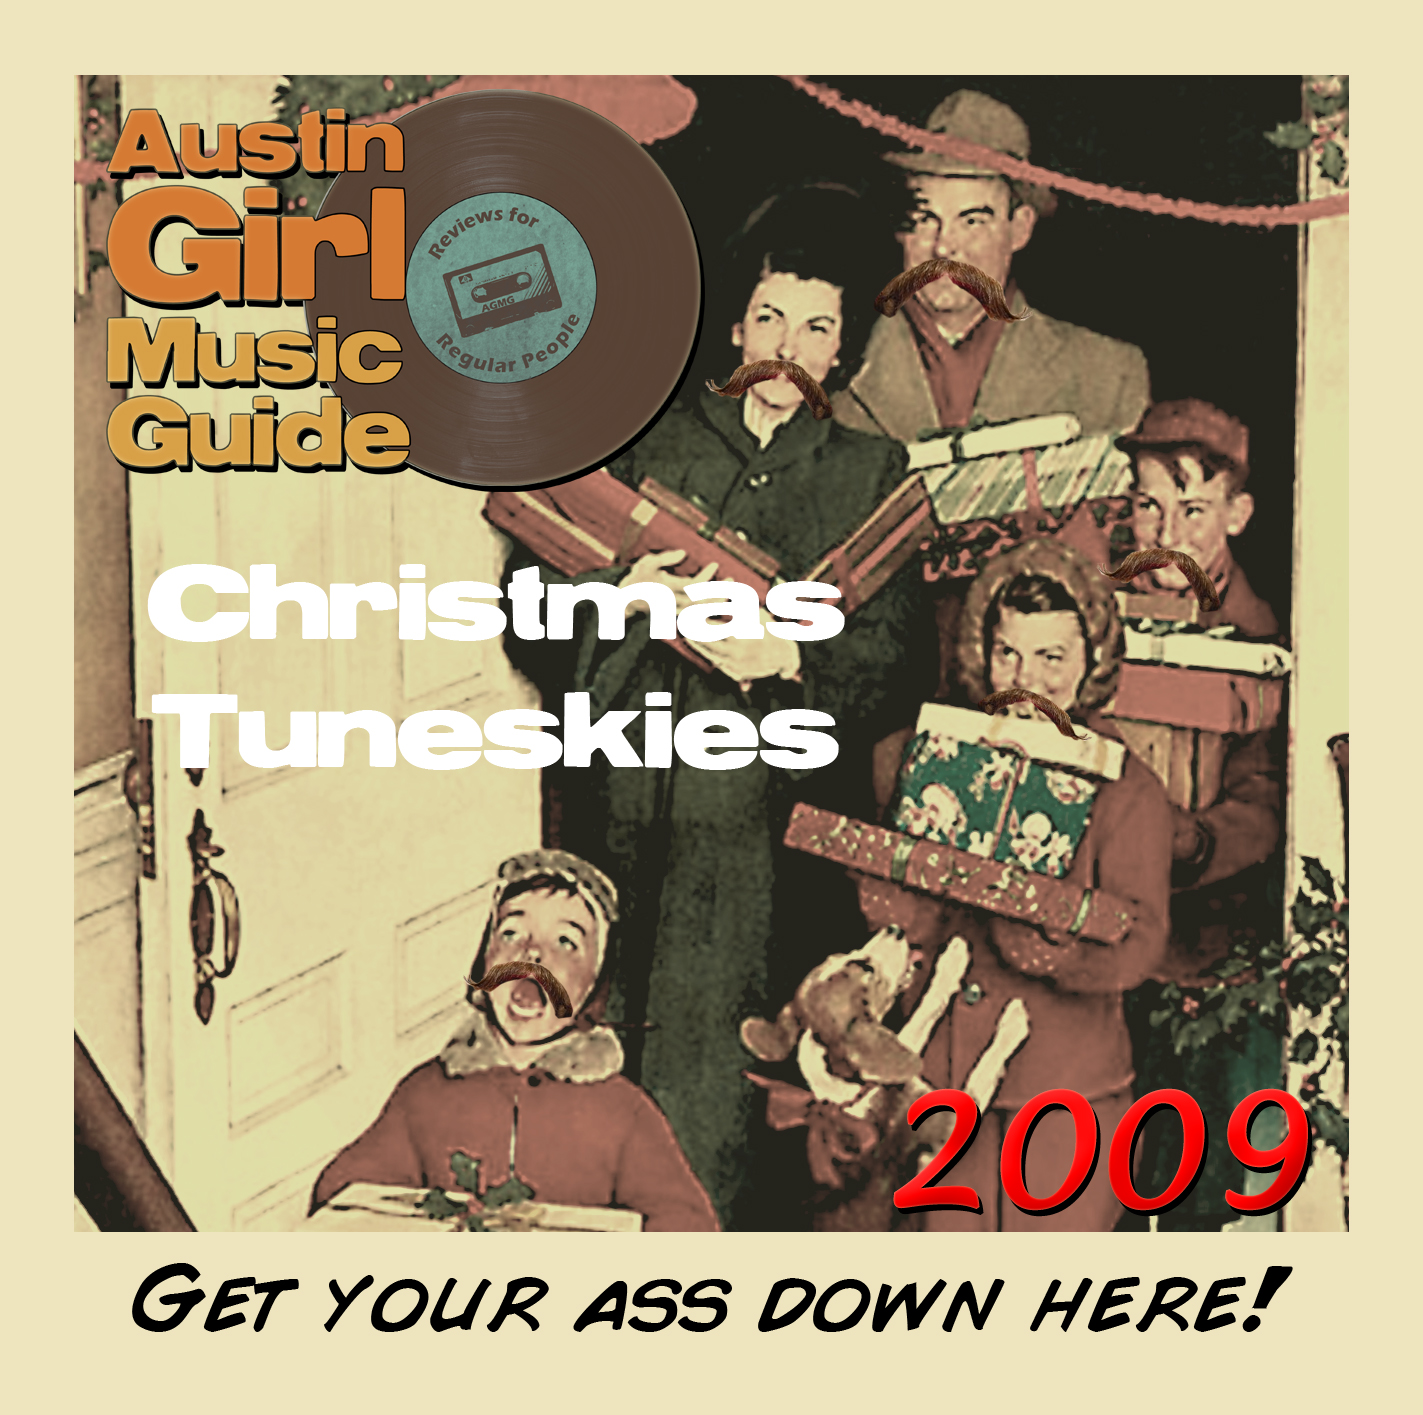 AGMG Presents: Christmas Tuneskies 2009